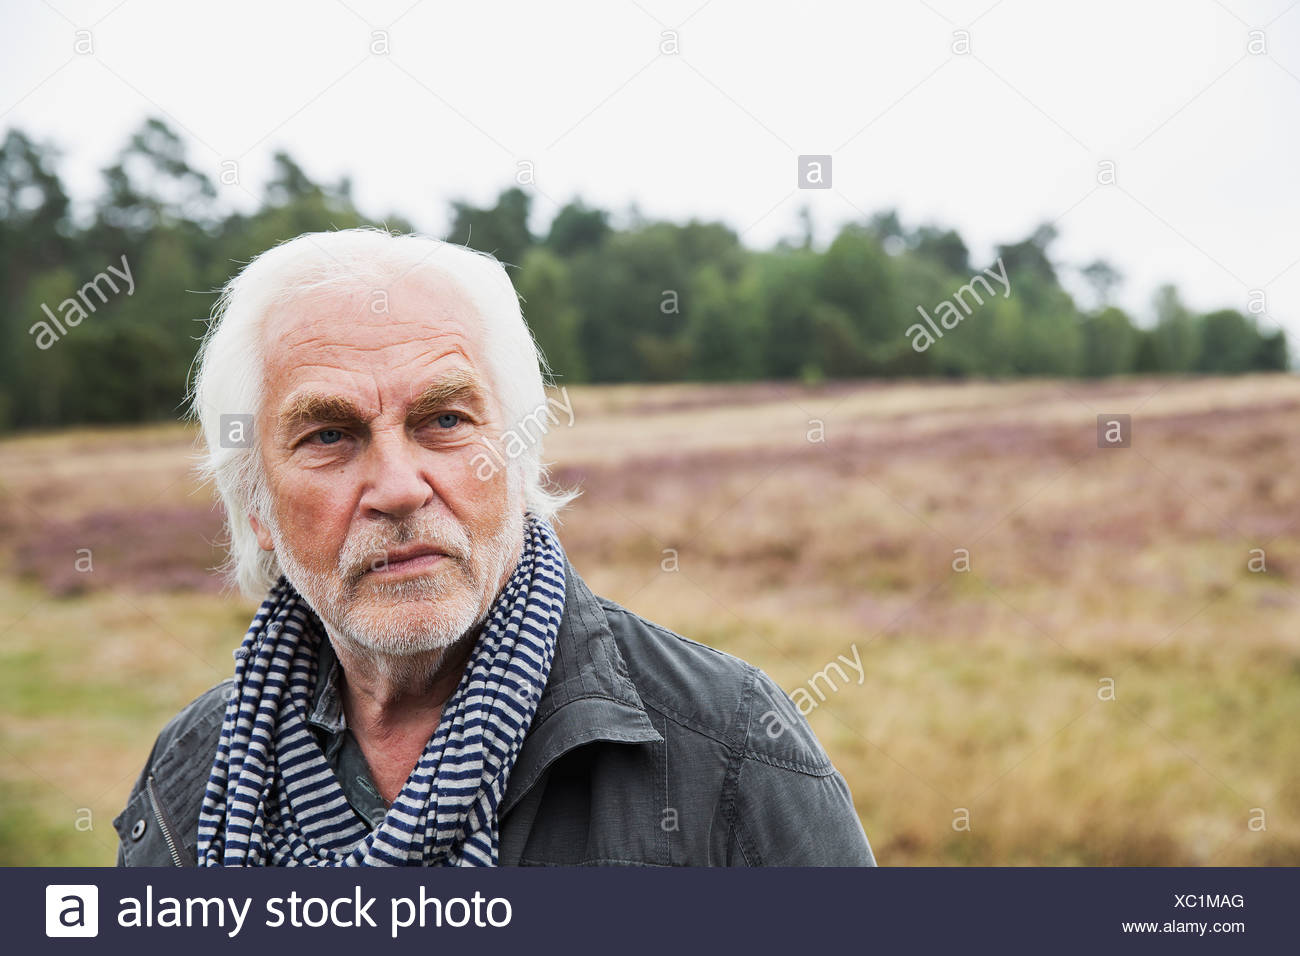 Portrait of senior man with grey hair - Stock Image